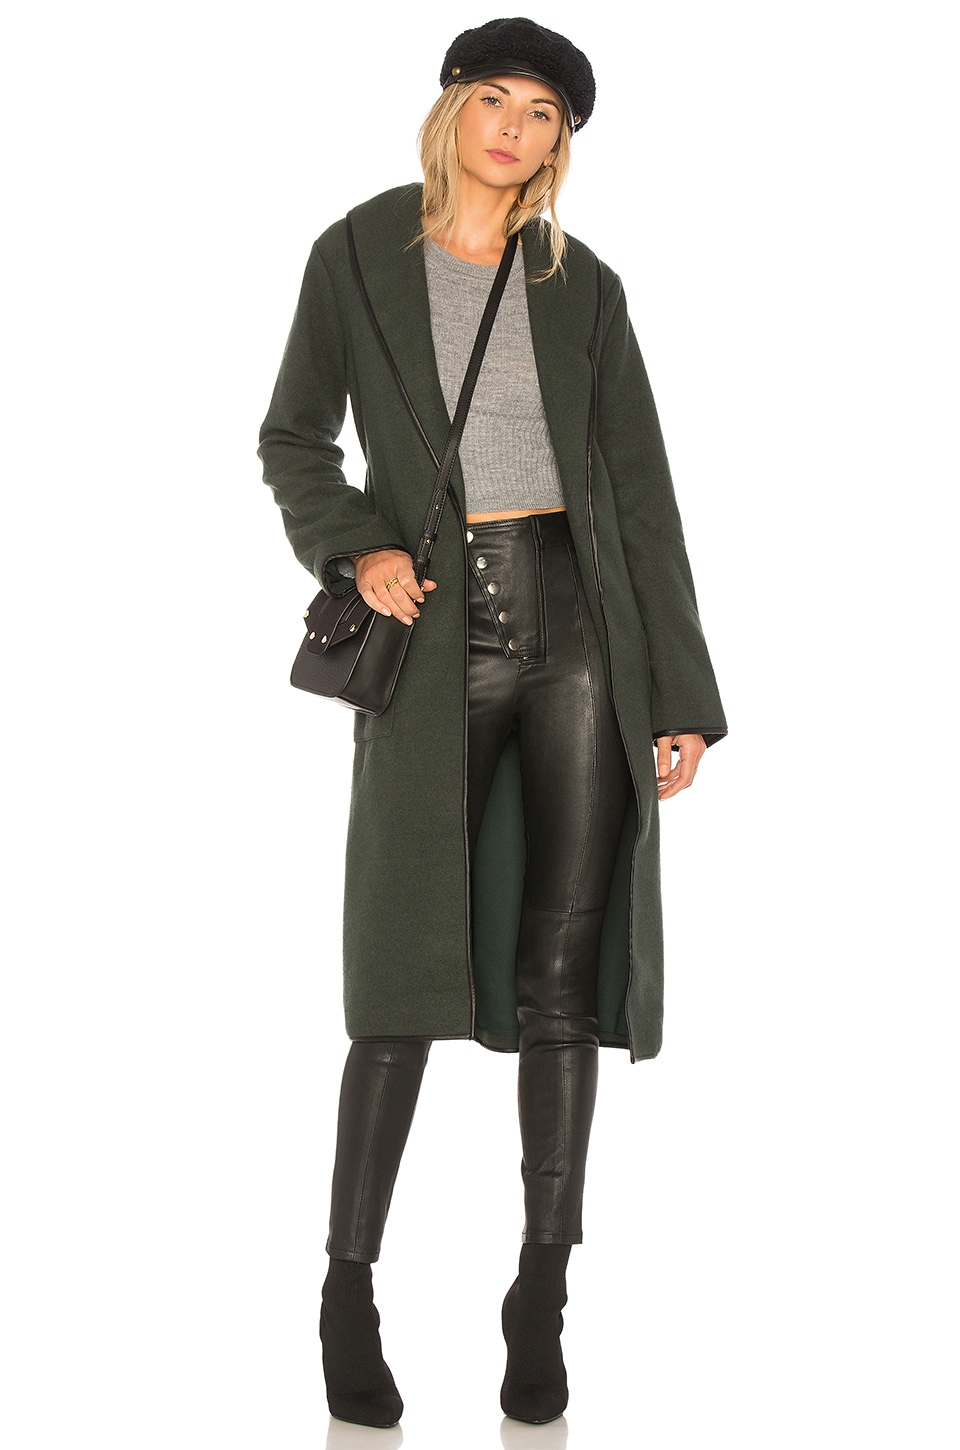 Tularosa Nadia Coat in Olive Green